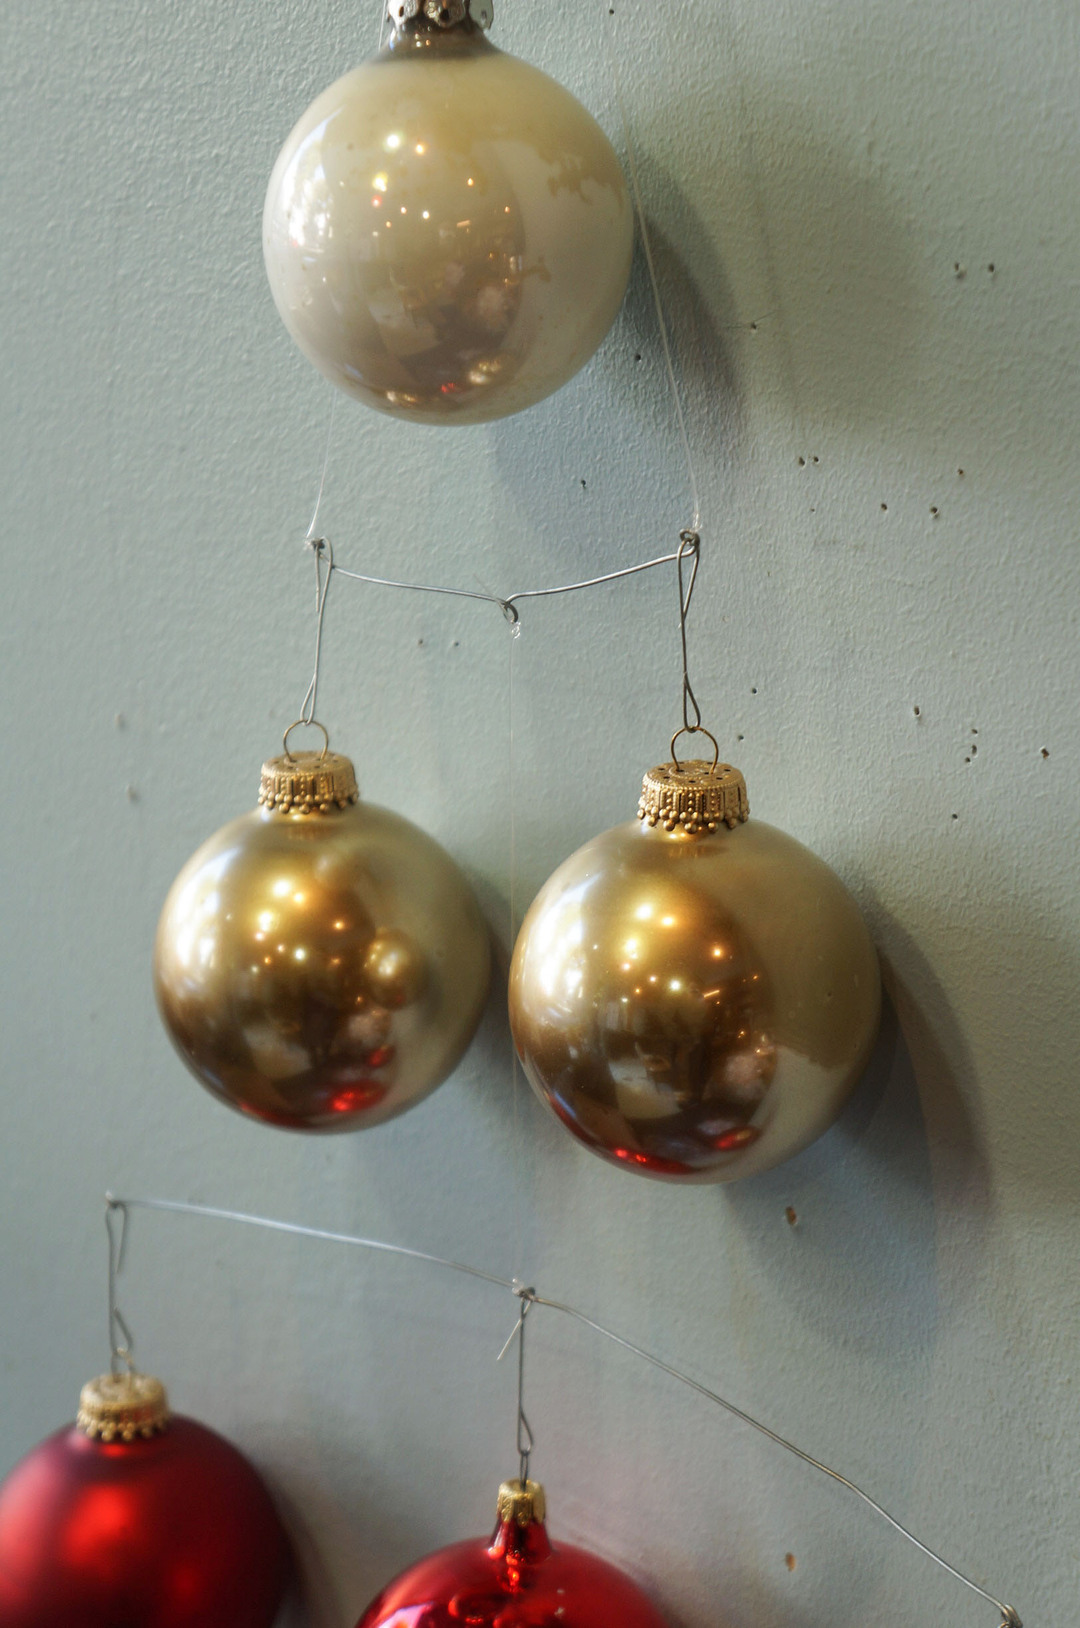 Vintage Blown Glass Christmas Ball Ornament/ヴィンテージ クリスマス オーナメント 吹きガラス ボール レトロ 6個セット 4